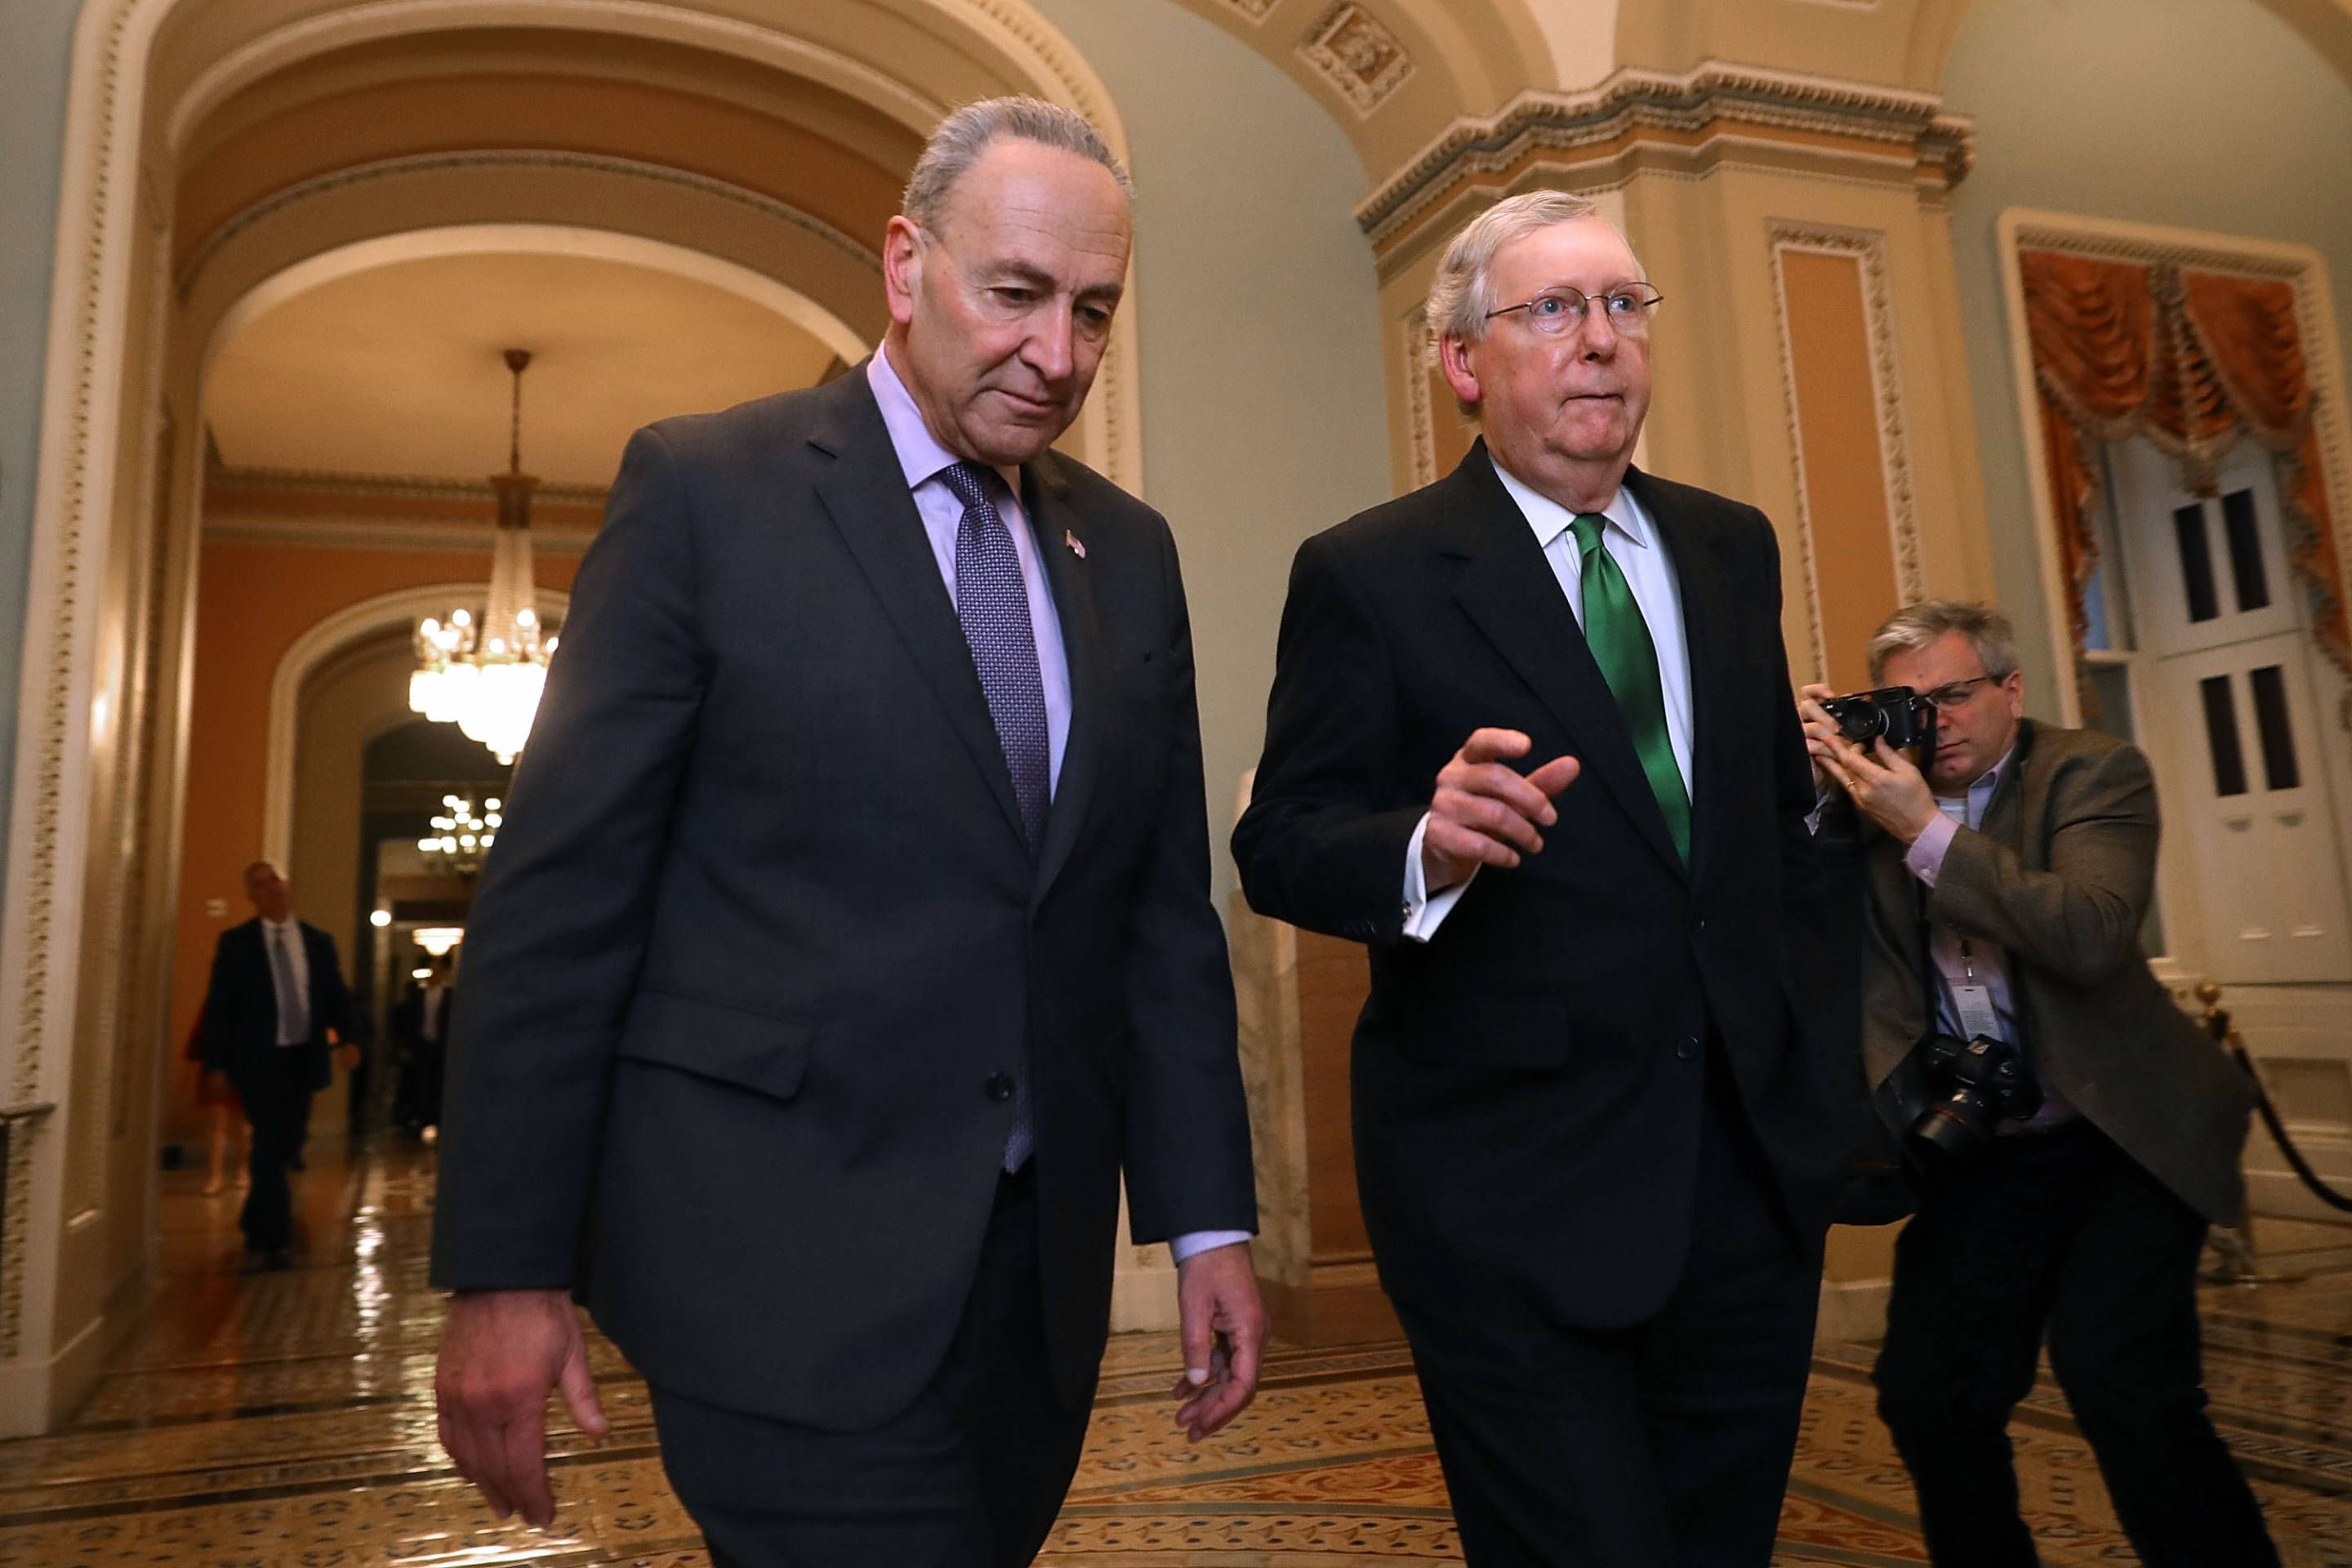 Senate Majority Leader McConnell (R-KY) And Senate Minority Leader Schumer (D-NY) Walk To Senate Chamber Together After Budget Deal Reached